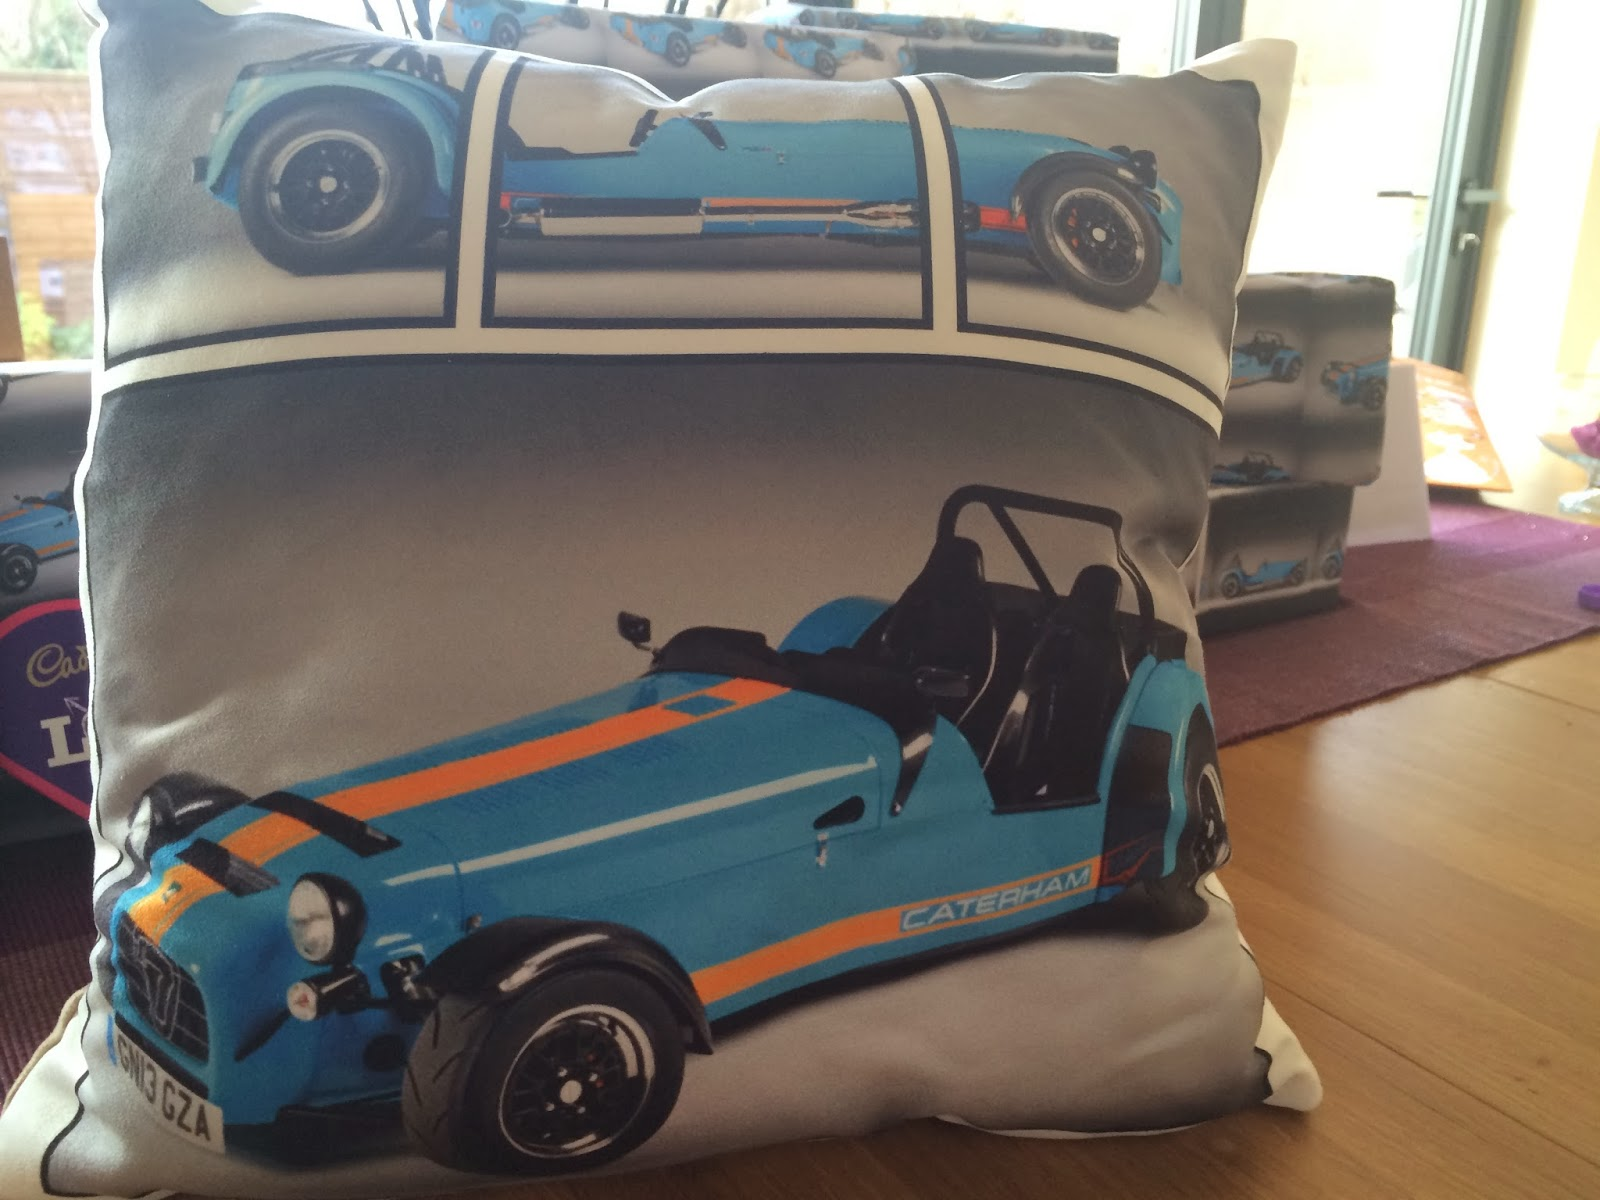 A Caterham cushion!